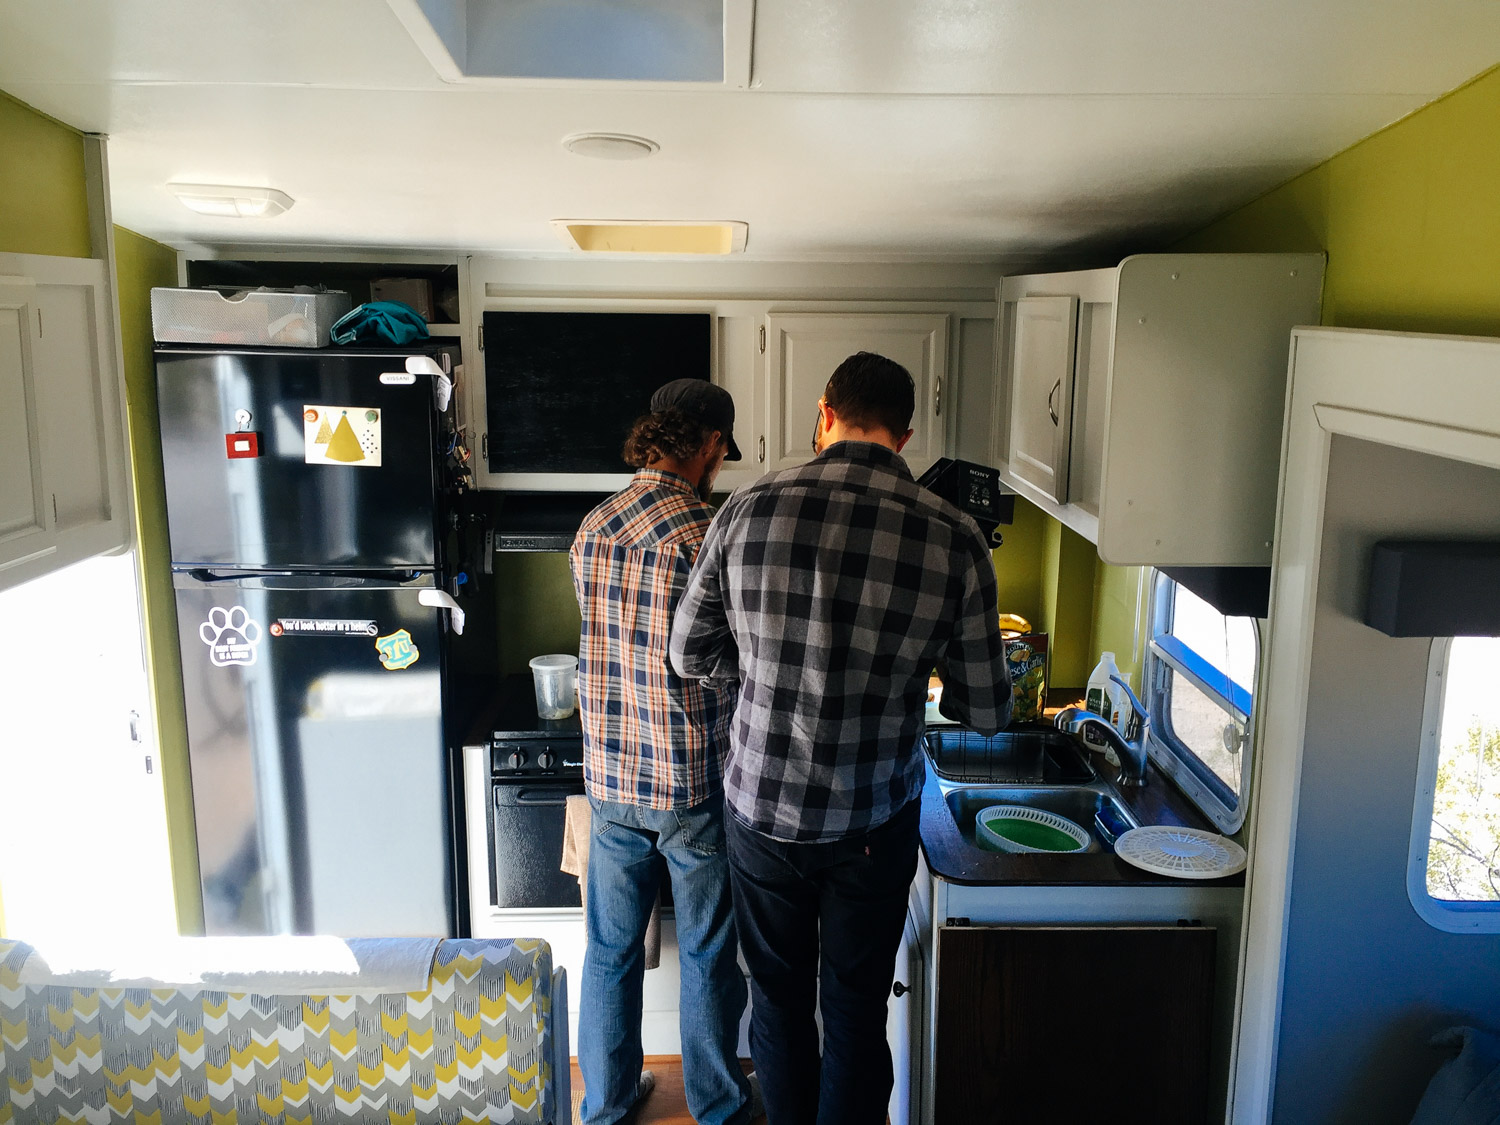 Brian is filming Jerud making lunch.